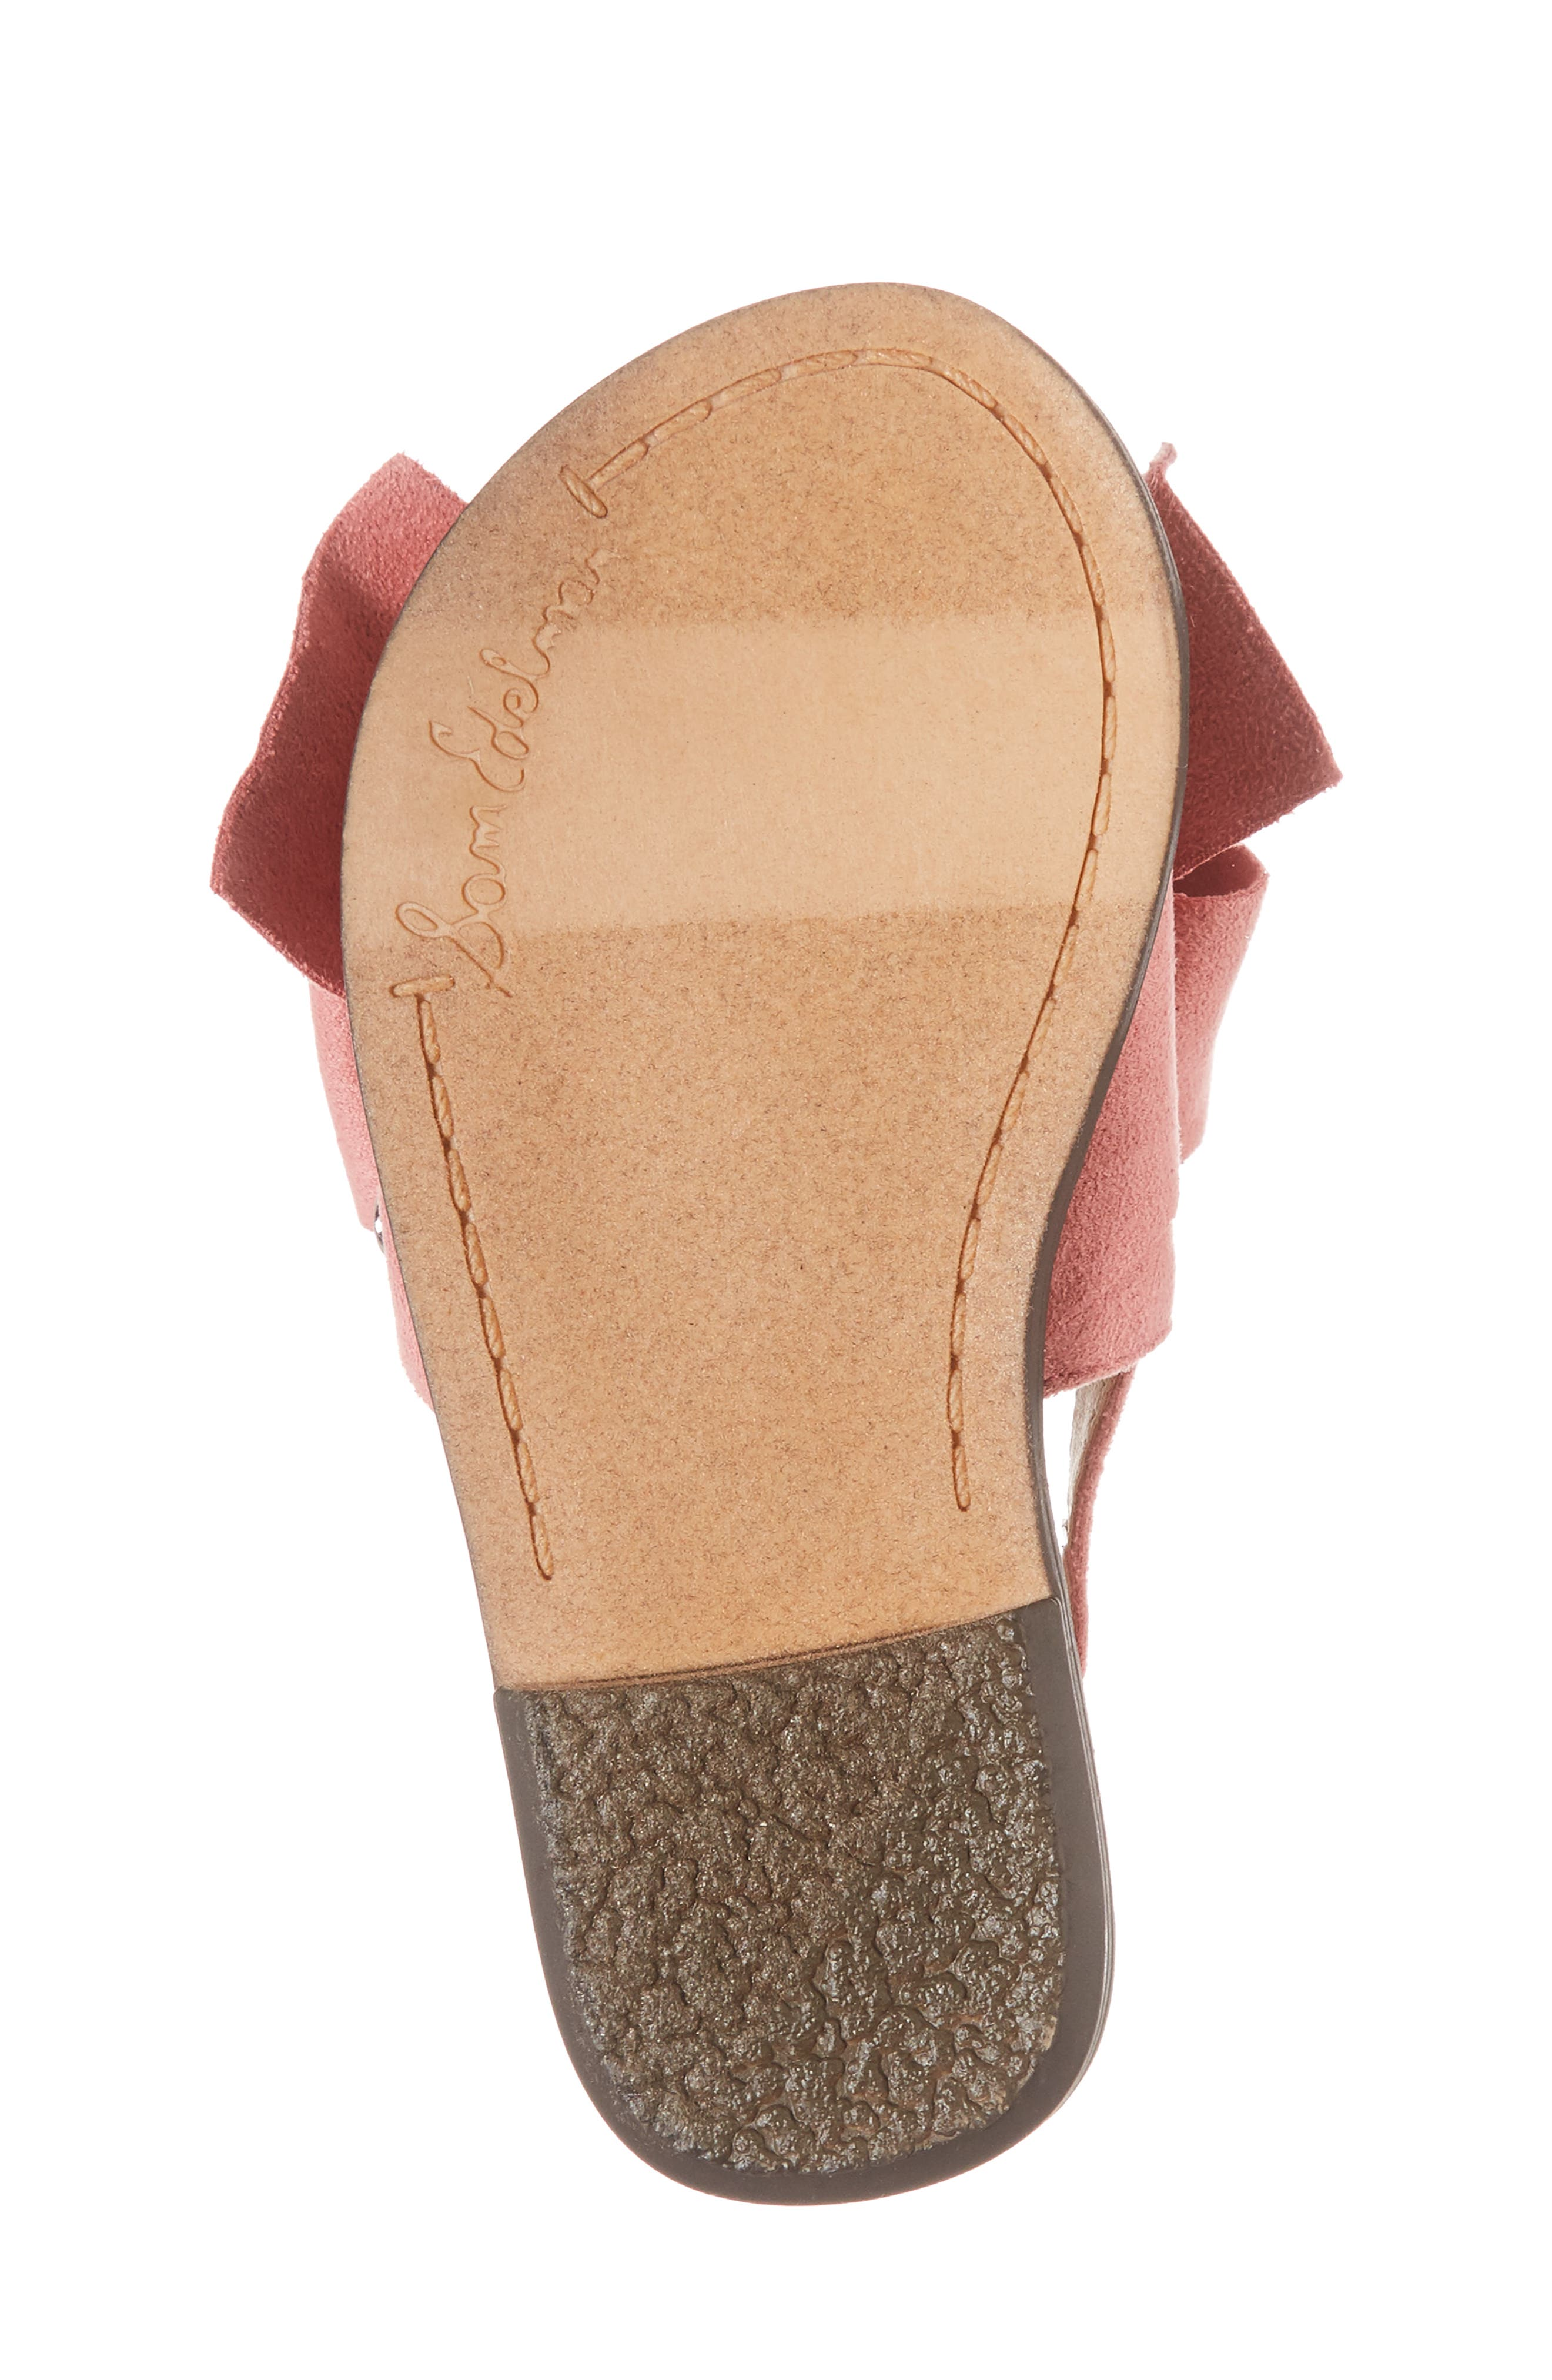 Gigi Bow Sandal,                             Alternate thumbnail 6, color,                             Pink Faux Suede